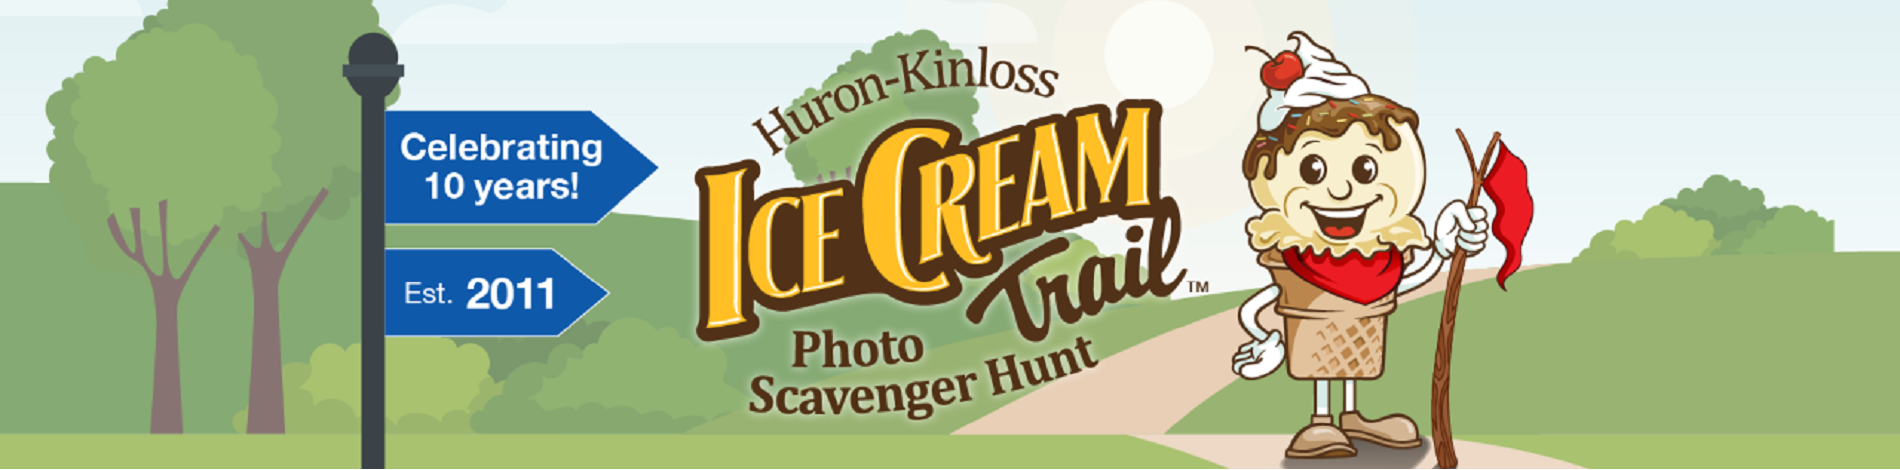 Ice Cream Trail logo and text saying